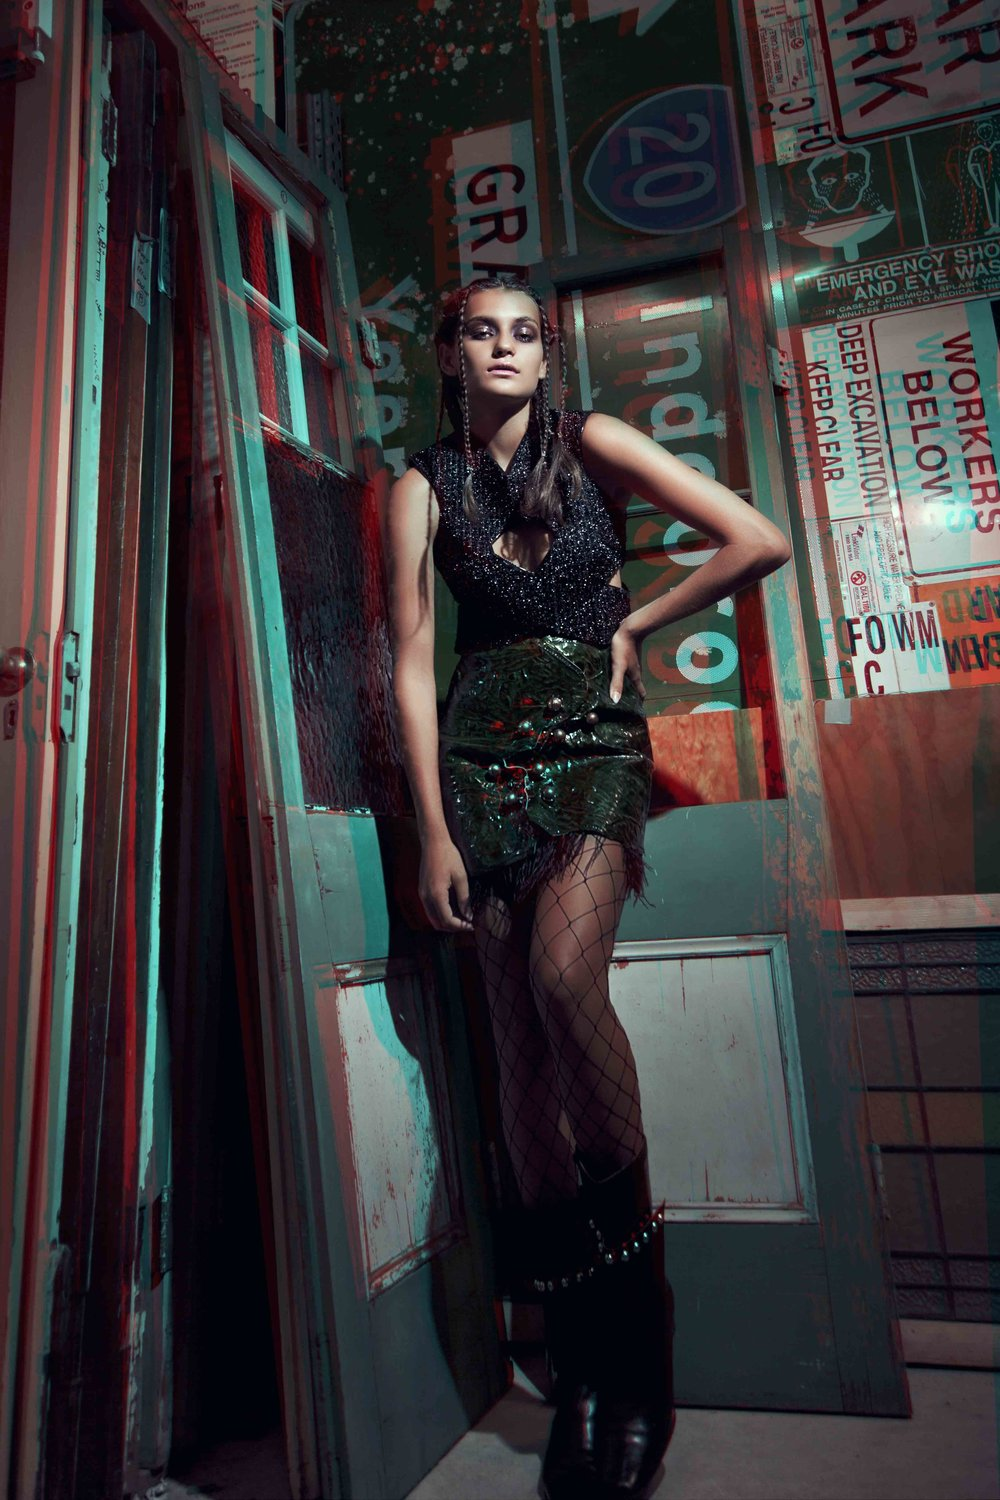 Top & Skirt: Isabella Jacuzzi / Boots: Zephyr Collection by Bronte Armstrong